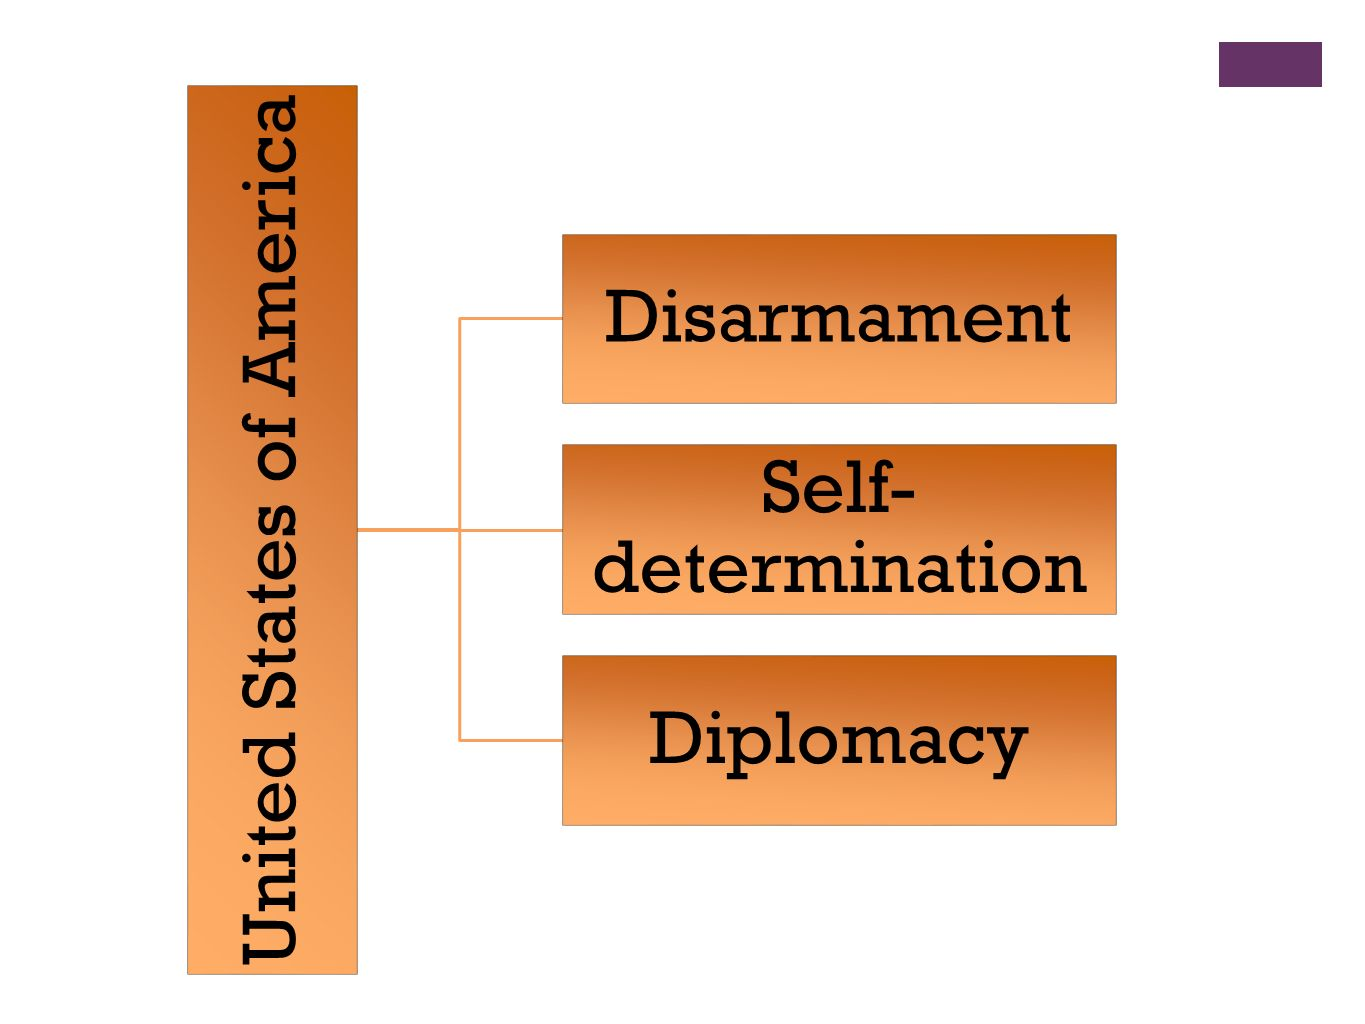 United States of America Disarmament Self- determination Diplomacy